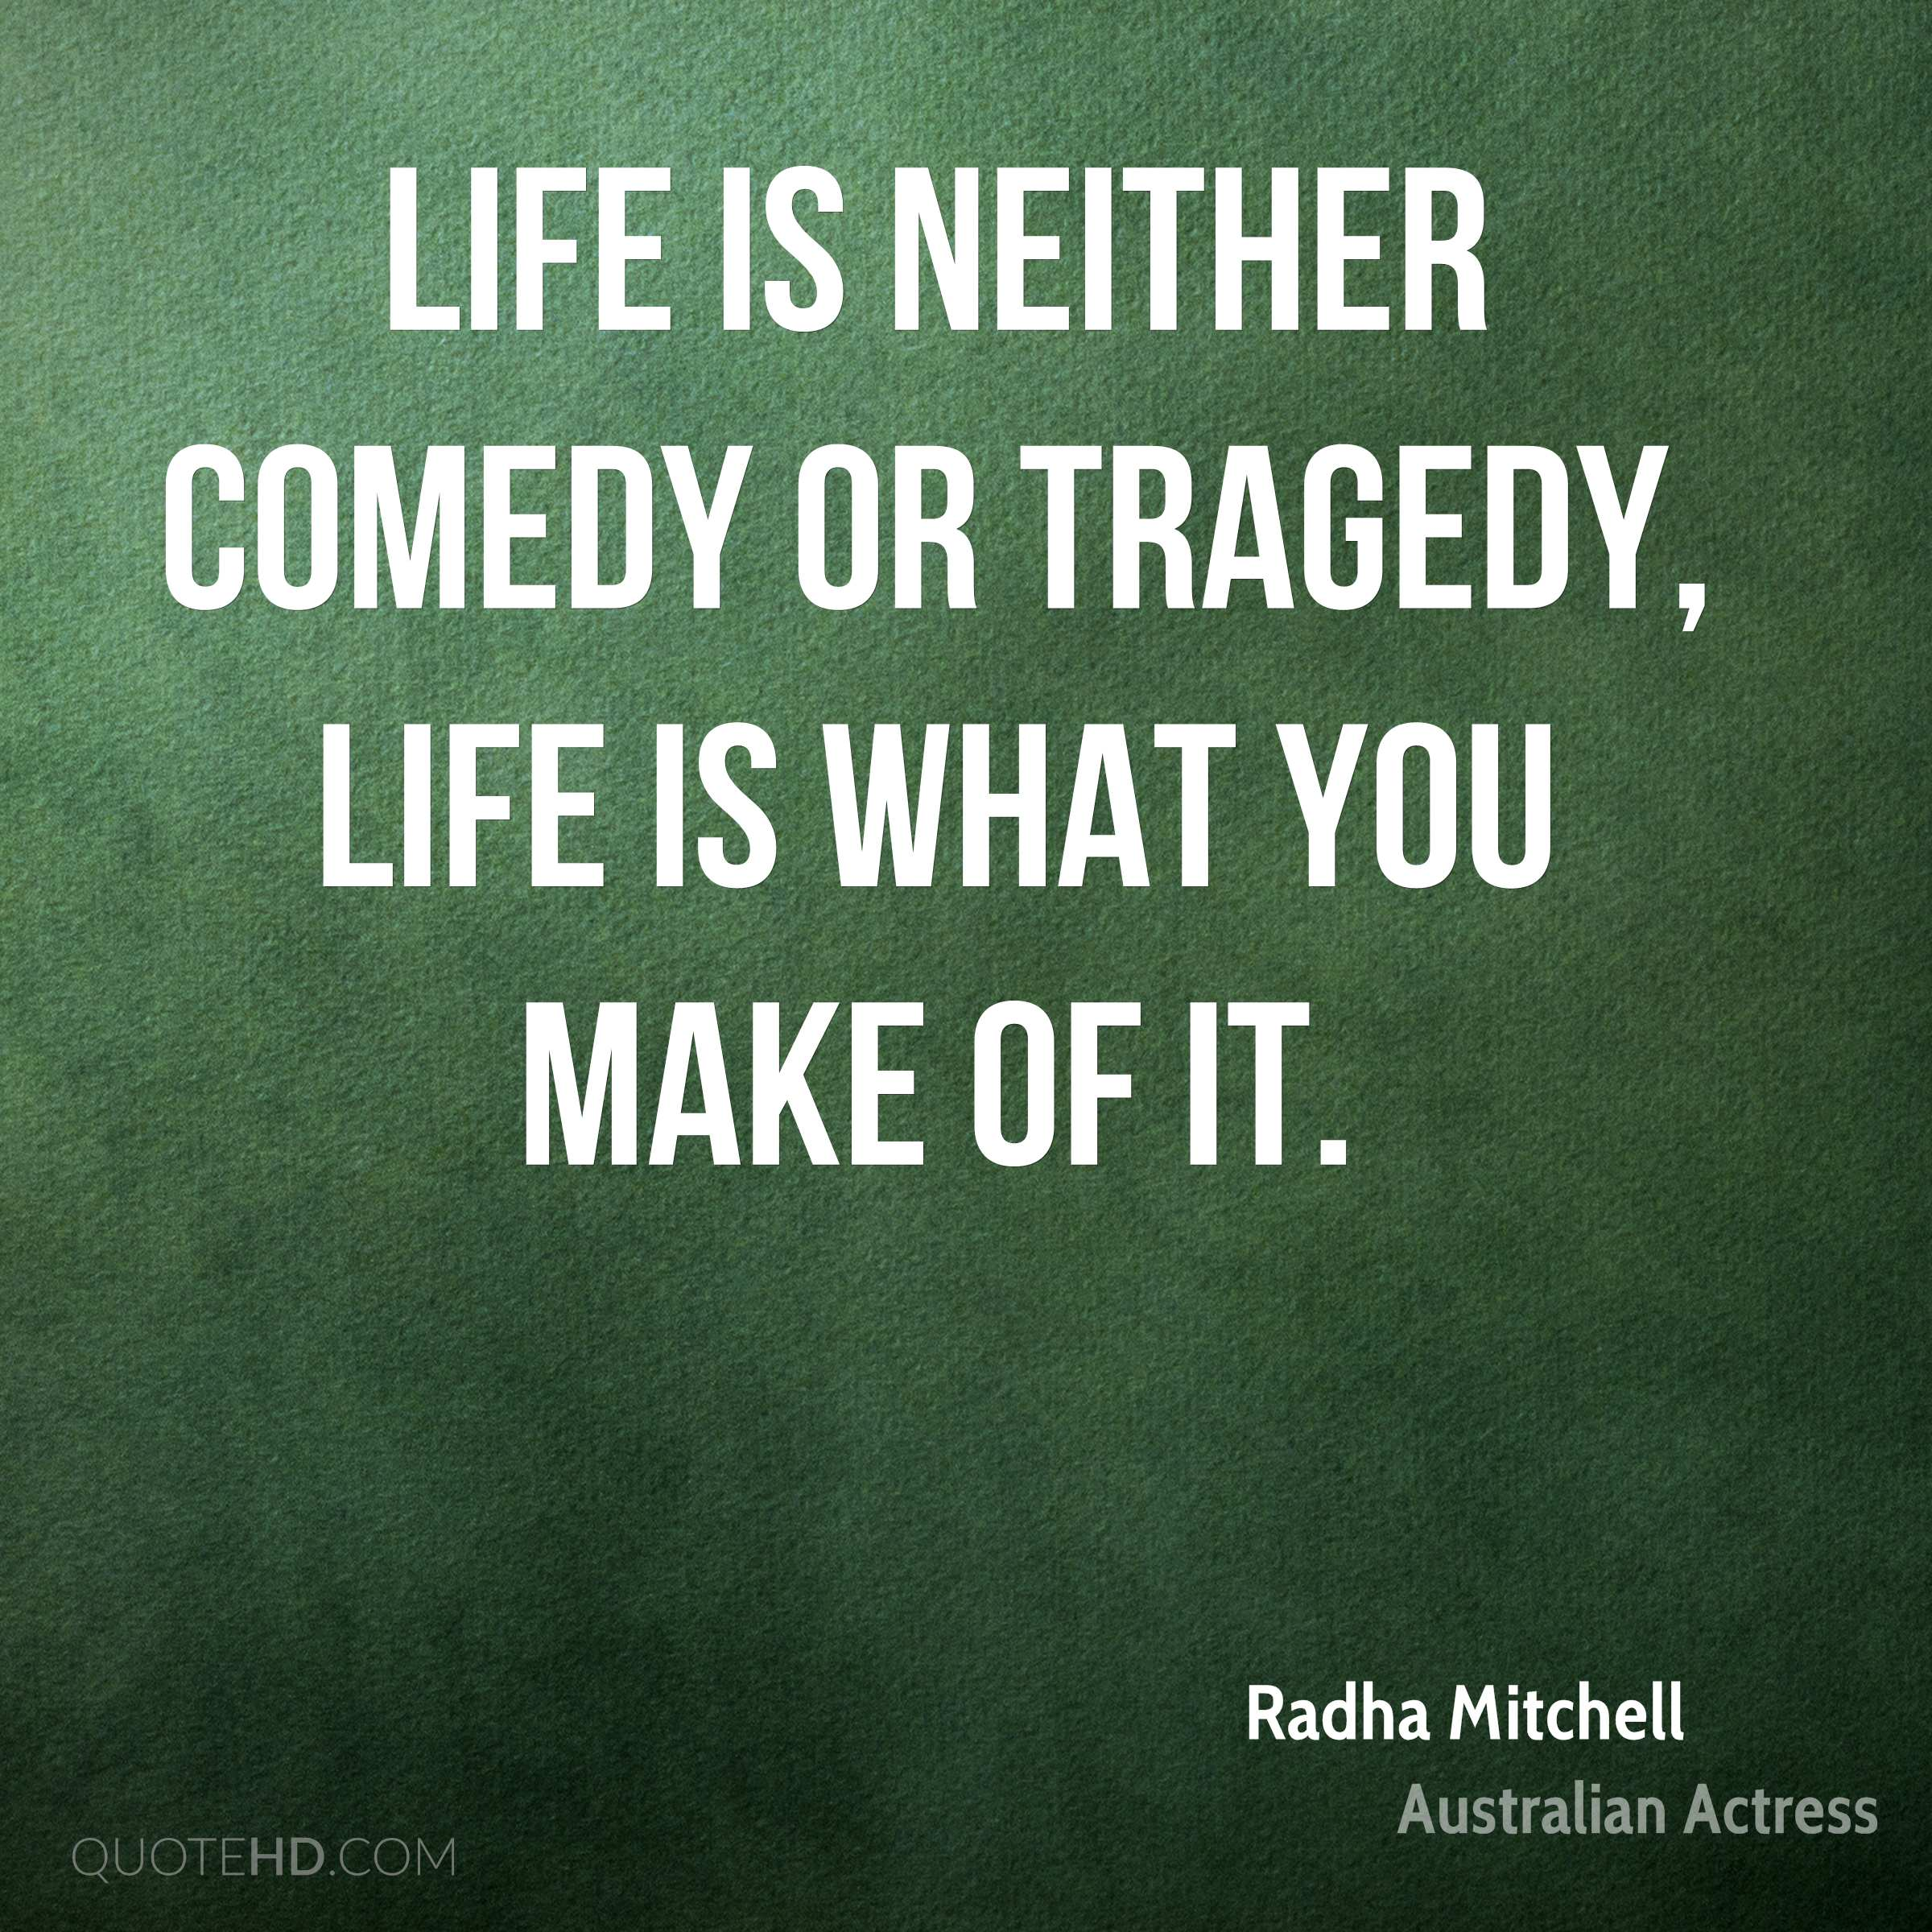 Life is neither comedy or tragedy, life is what you make of it.